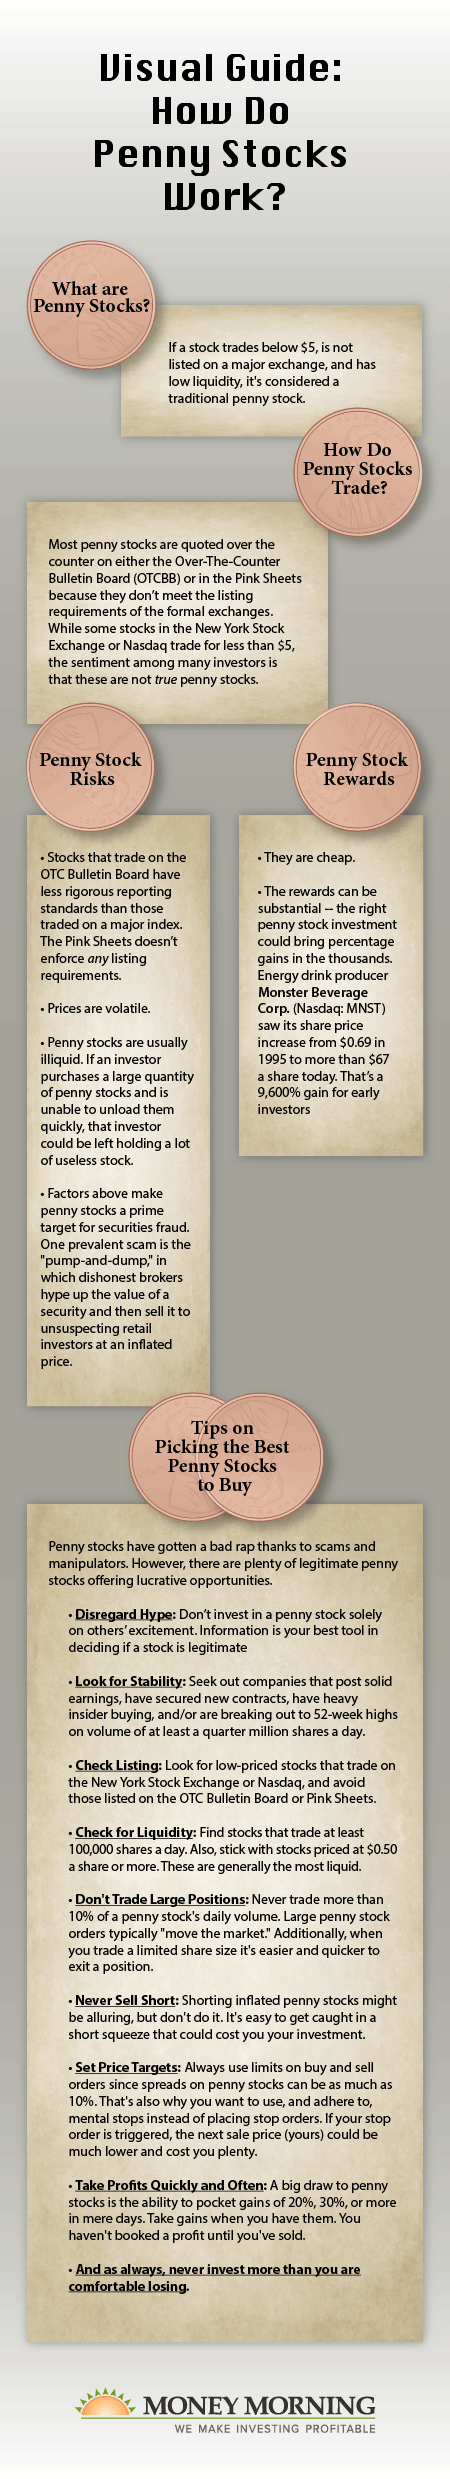 how do penny stocks work